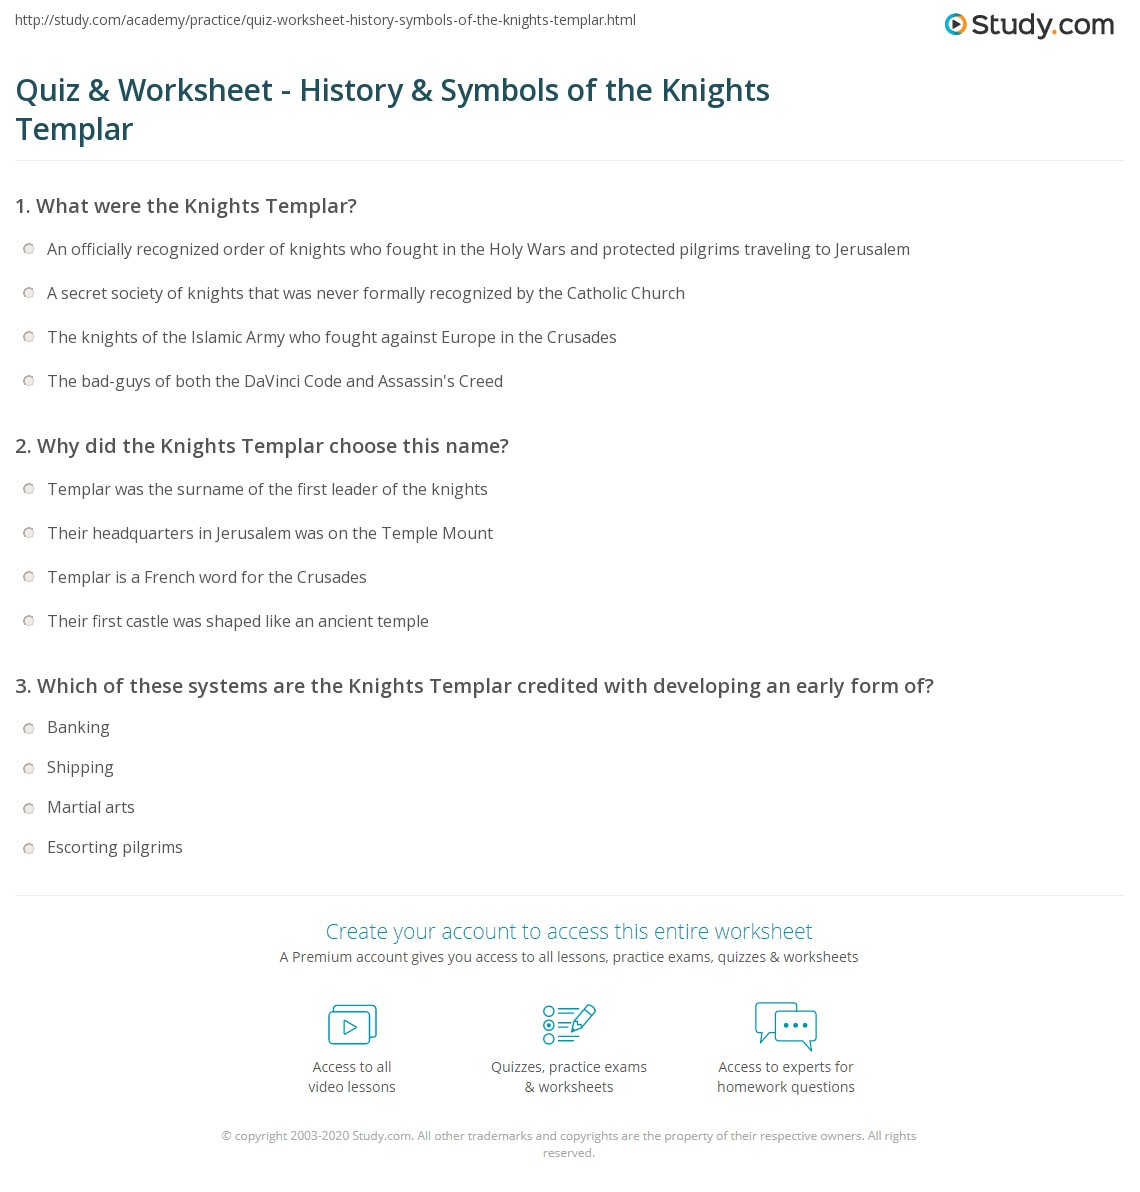 Free Worksheet American Symbols Worksheet quiz worksheet history symbols of the knights templar print worksheet